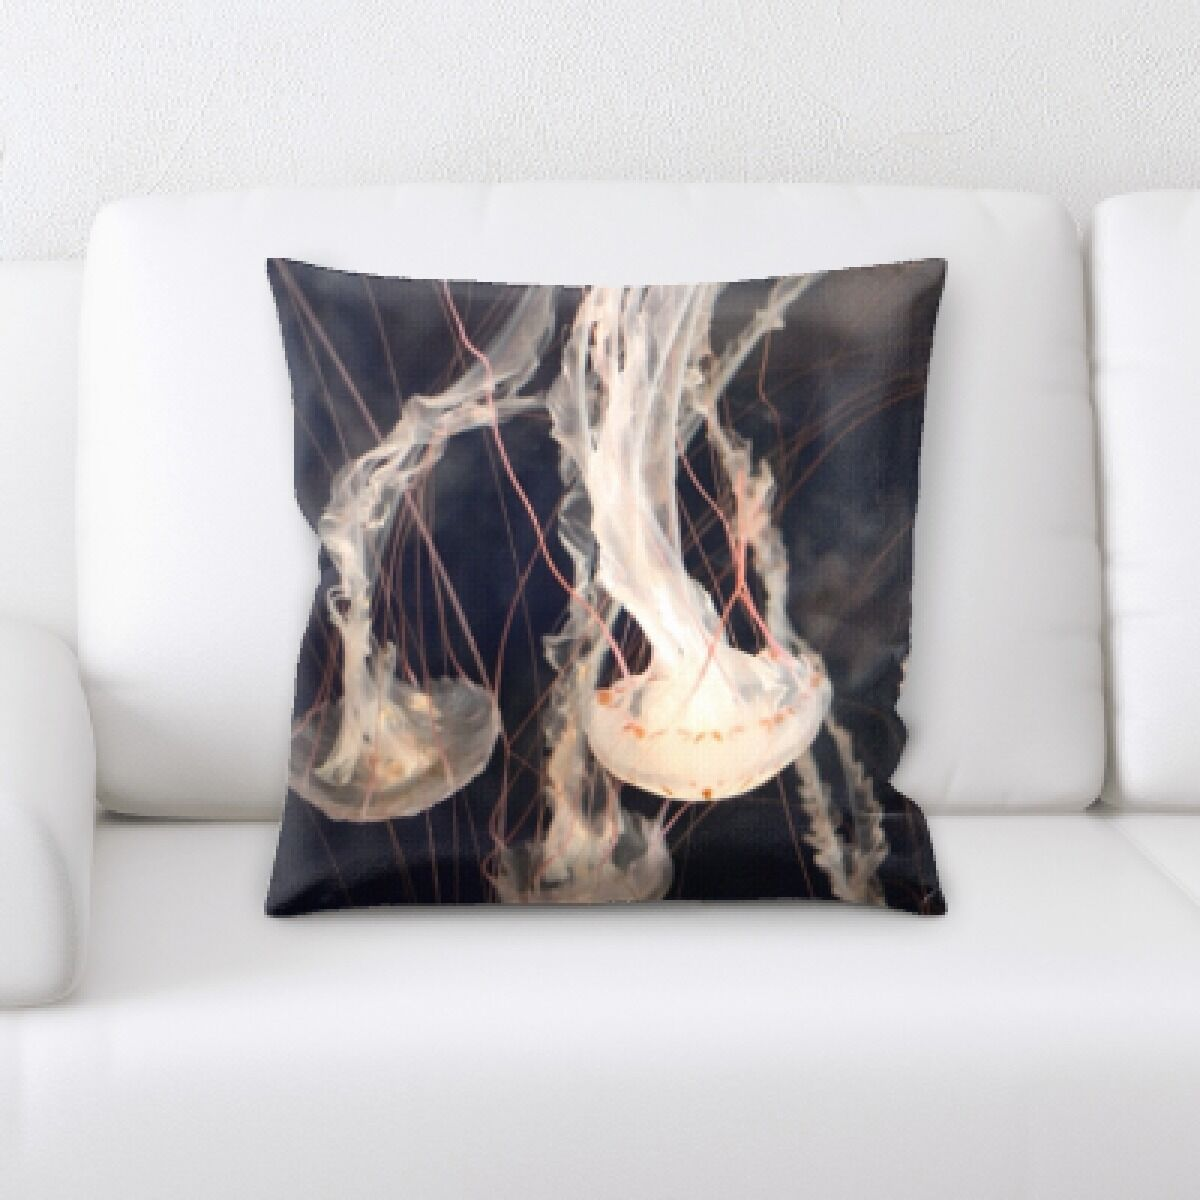 Patson Jelly Fish (1) Throw Pillow